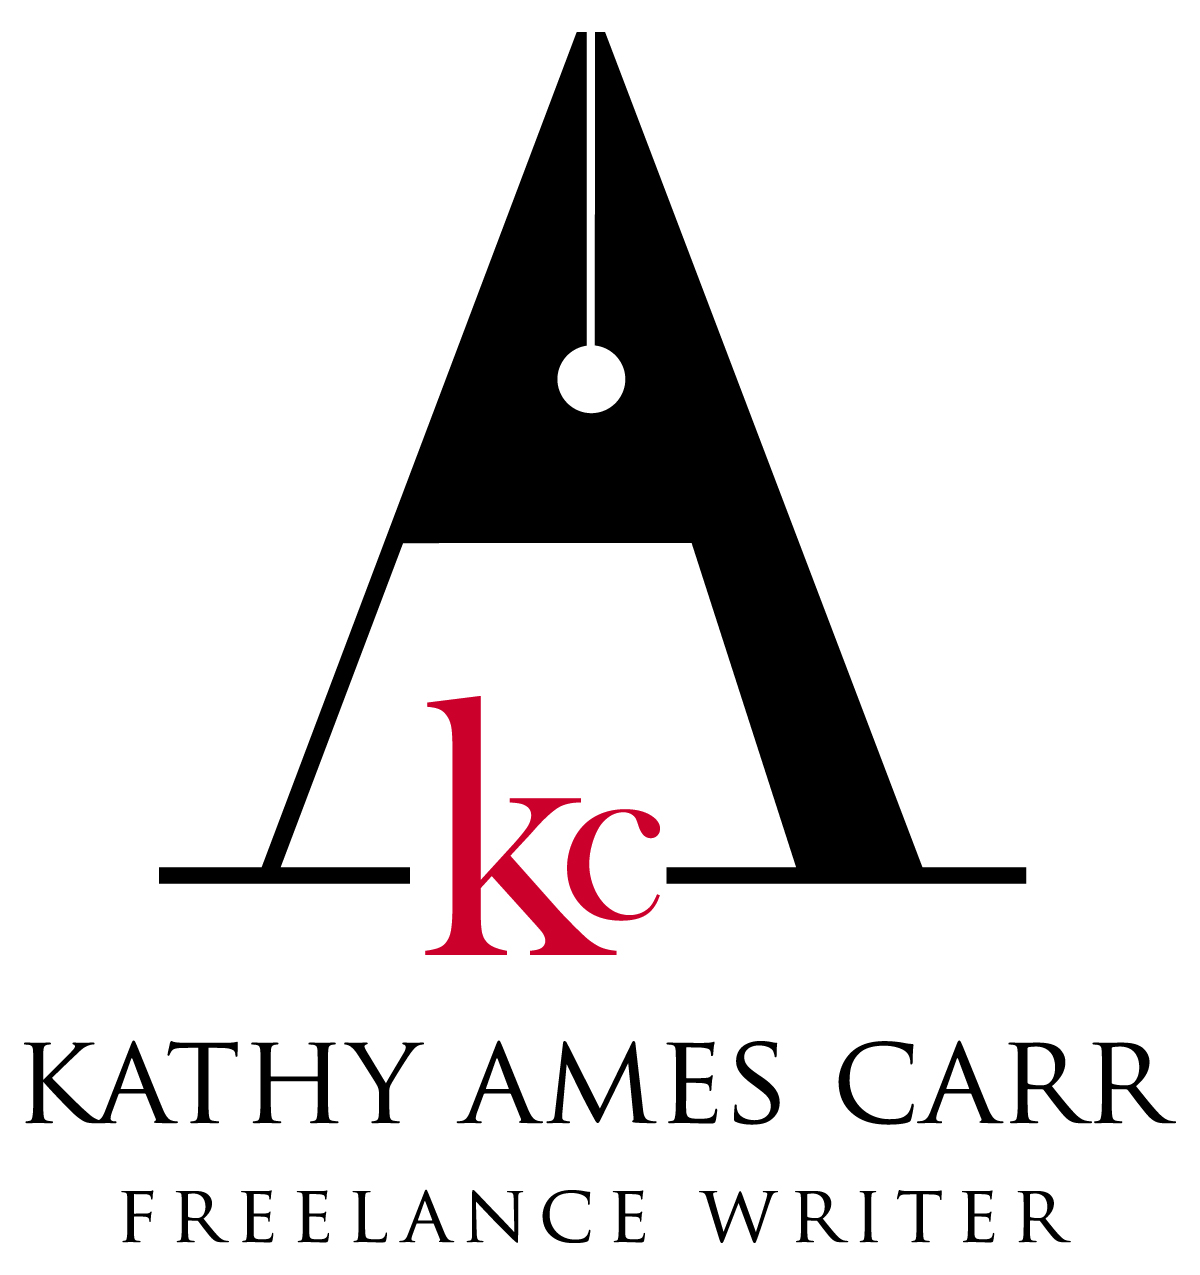 Kathy Ames Carr